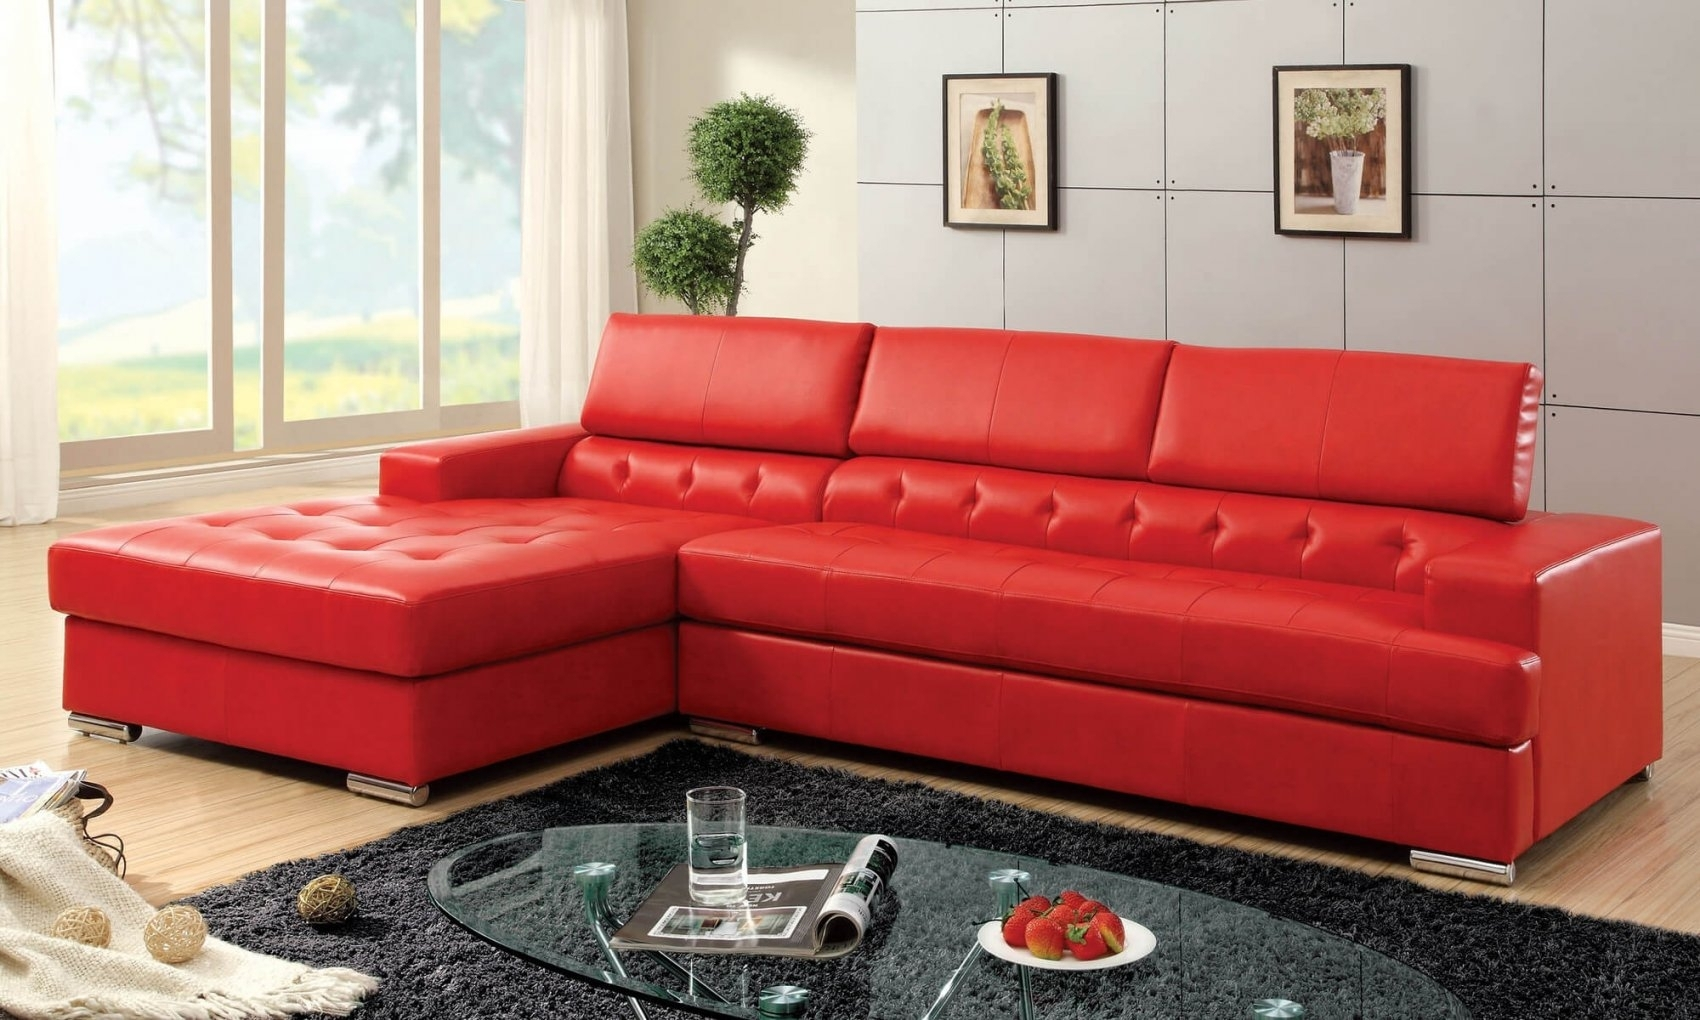 Red Leather Sectional Sofa Contemporary – Best Sectional In Intended For Red Sectional Sofas With Ottoman (View 13 of 15)